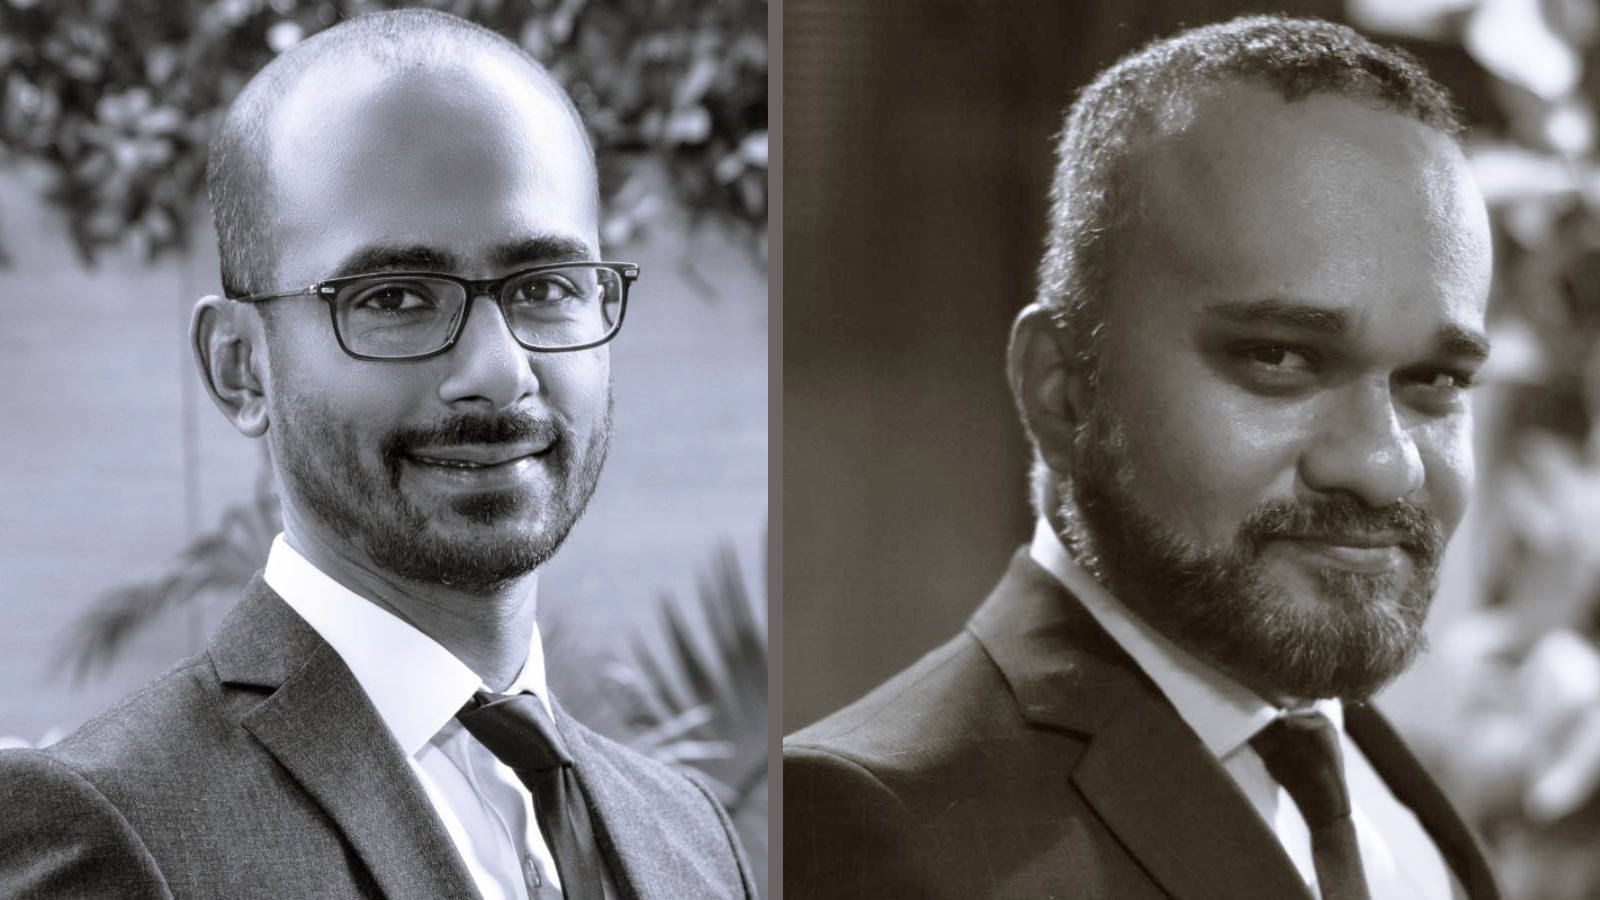 Praveen Raju and Mathew Chacko, Spice Route Legal